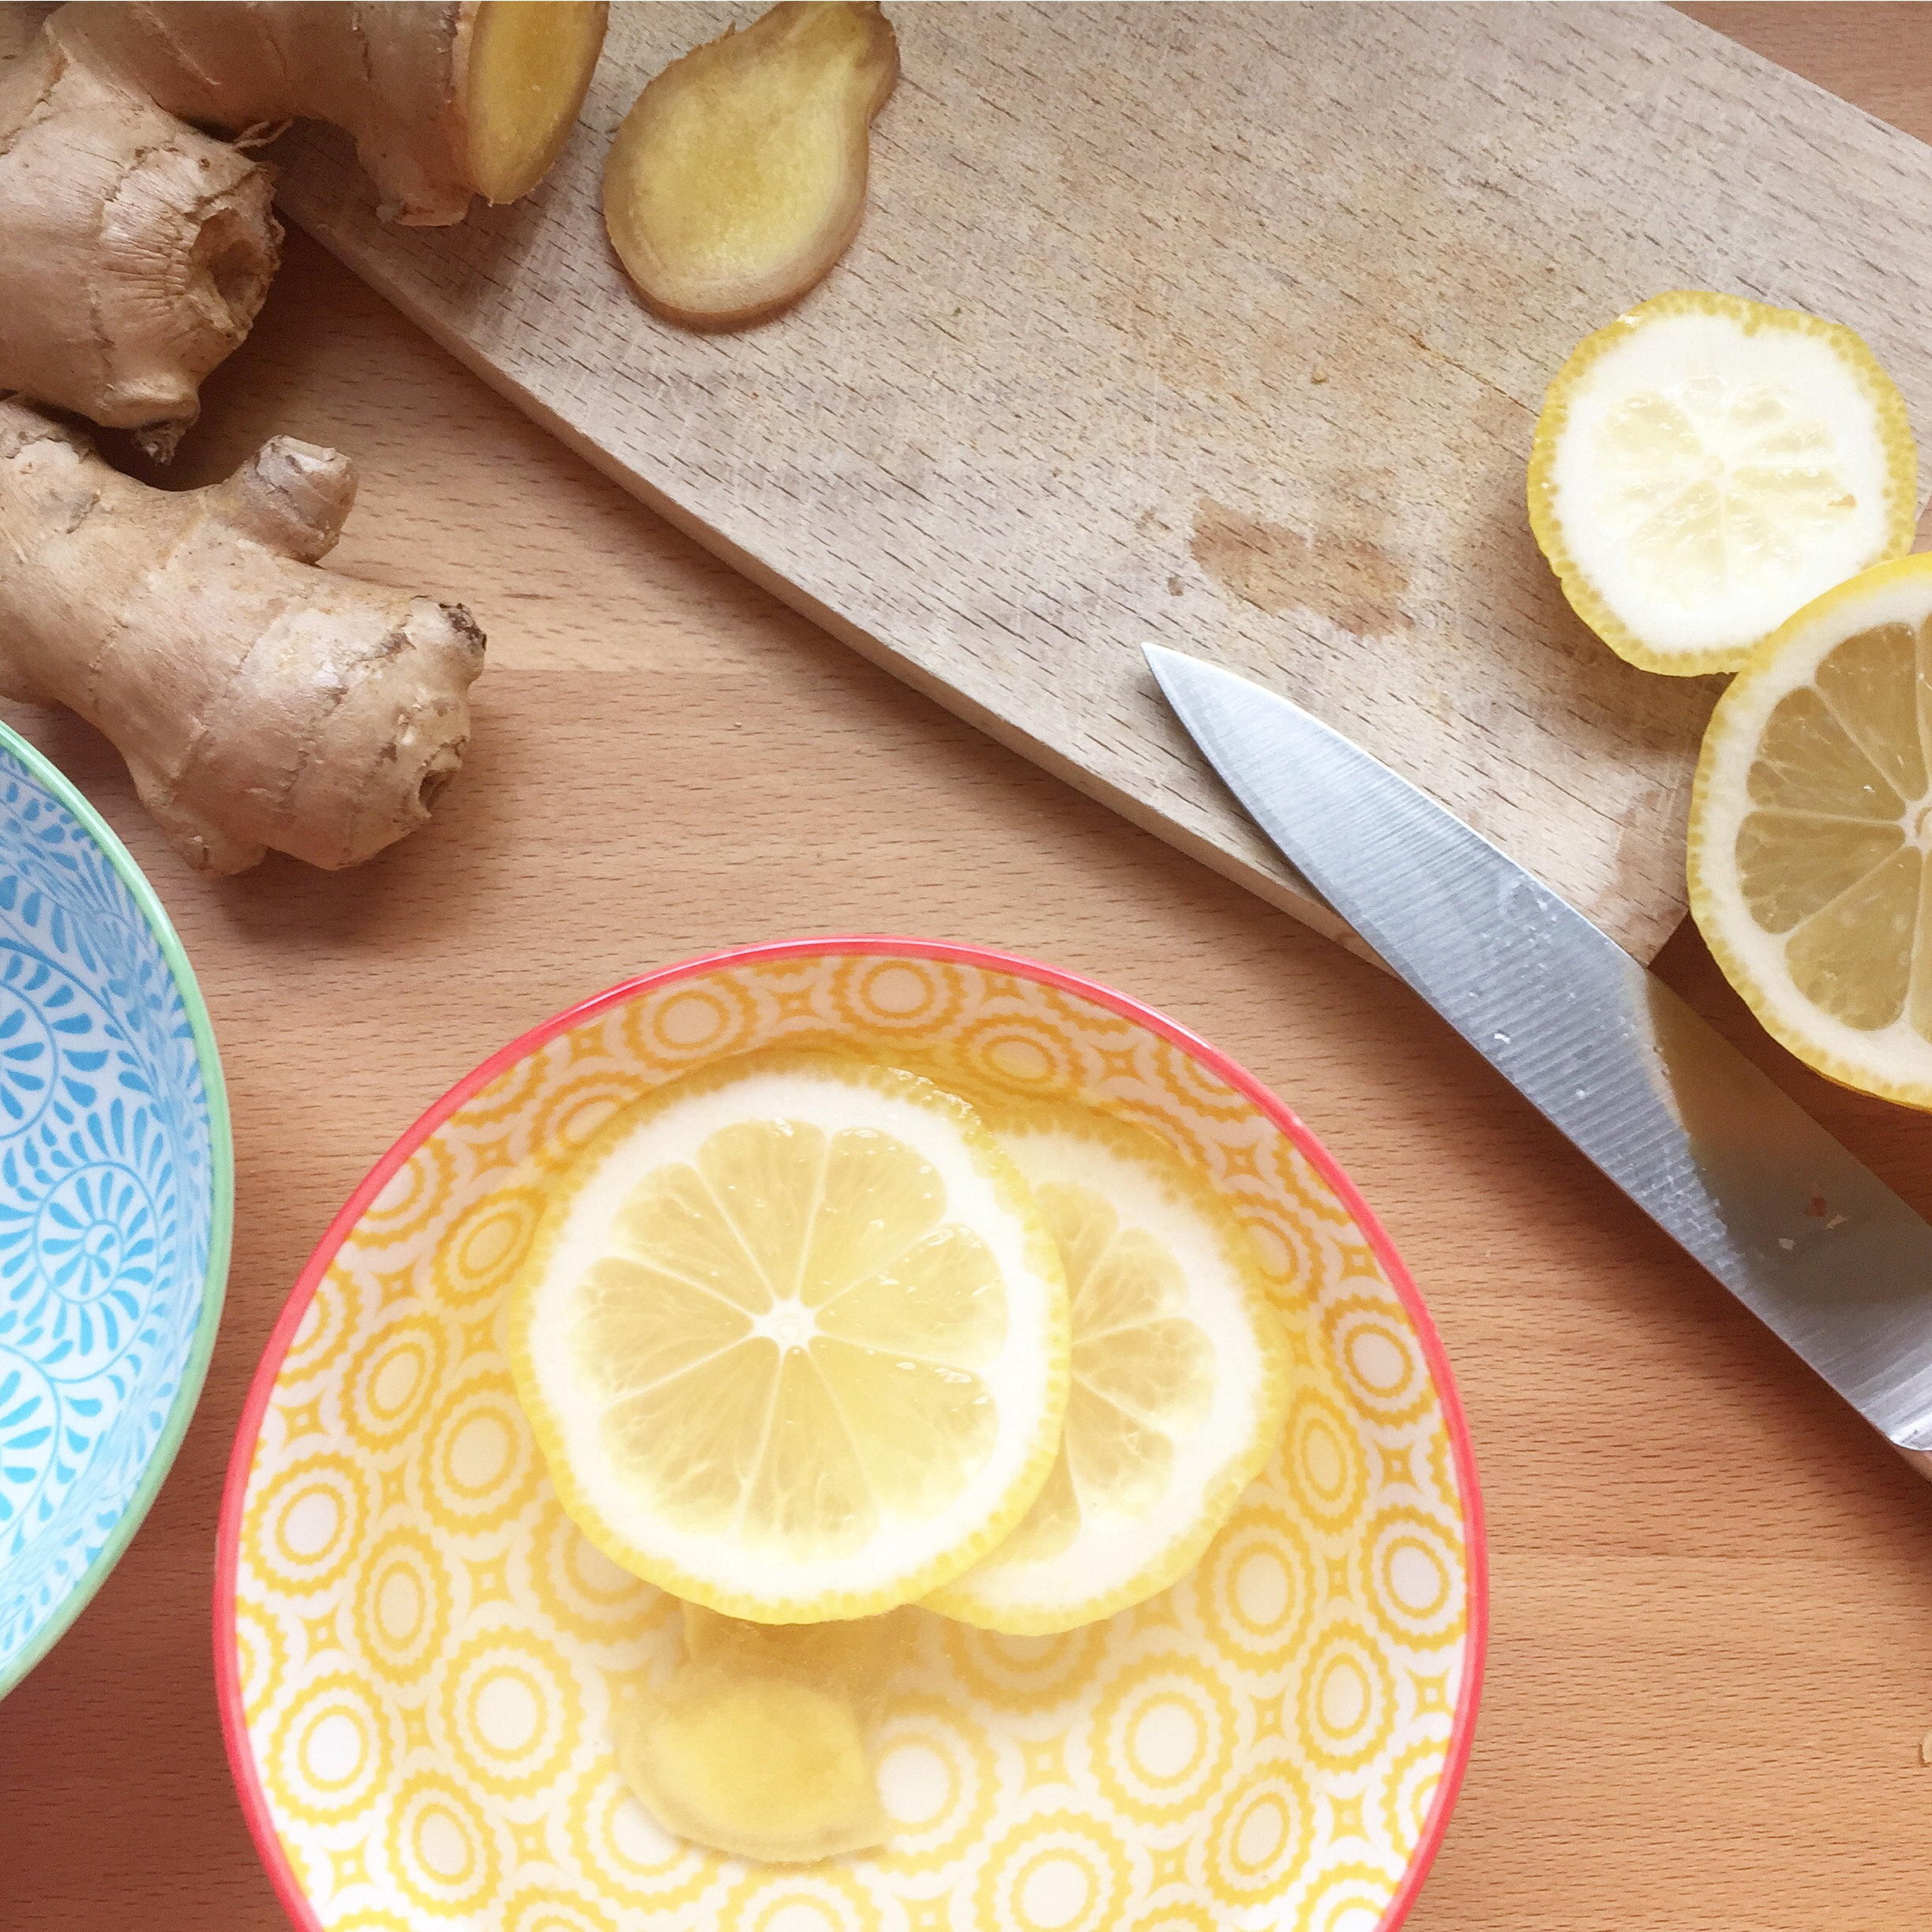 Jules and Louis Blog | How To Make Homemade Ginger Tea With Lemon